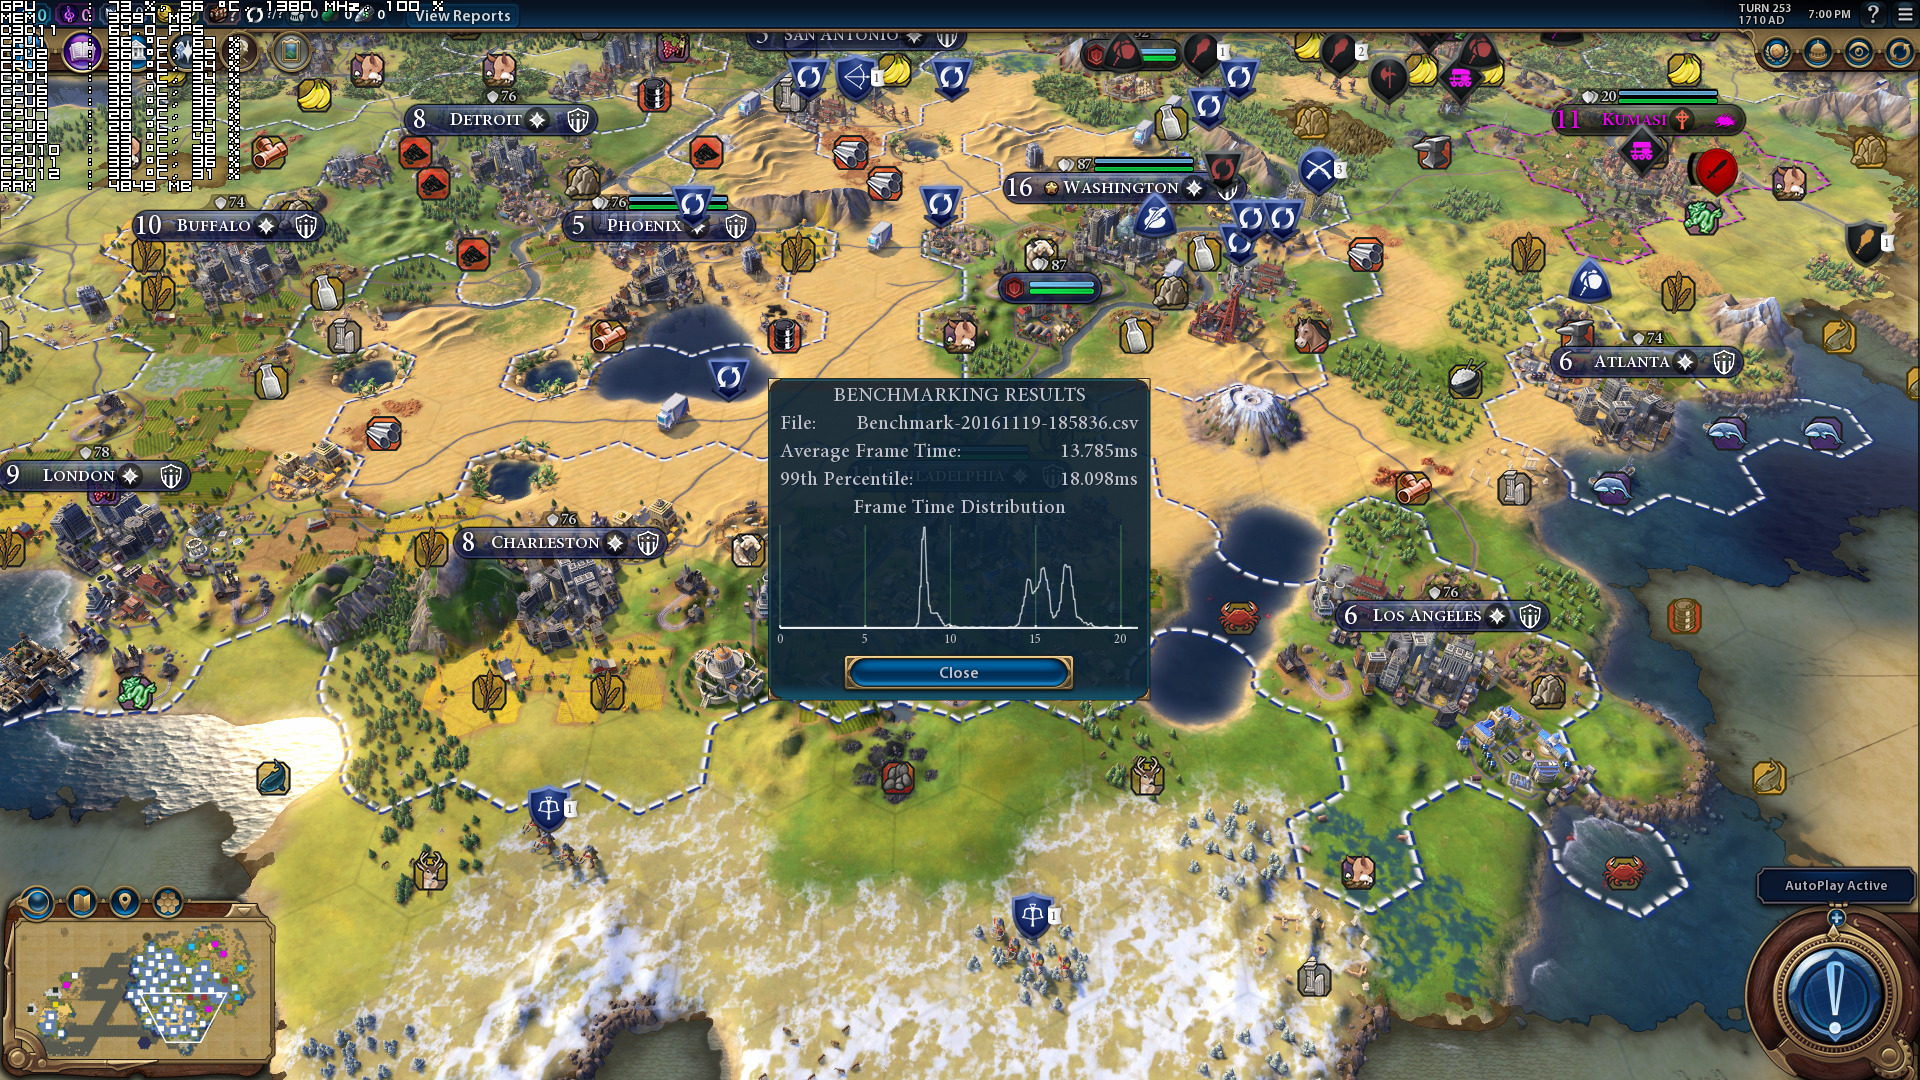 Sid Meier's Civilization VI - DX11 versus DX12 performance